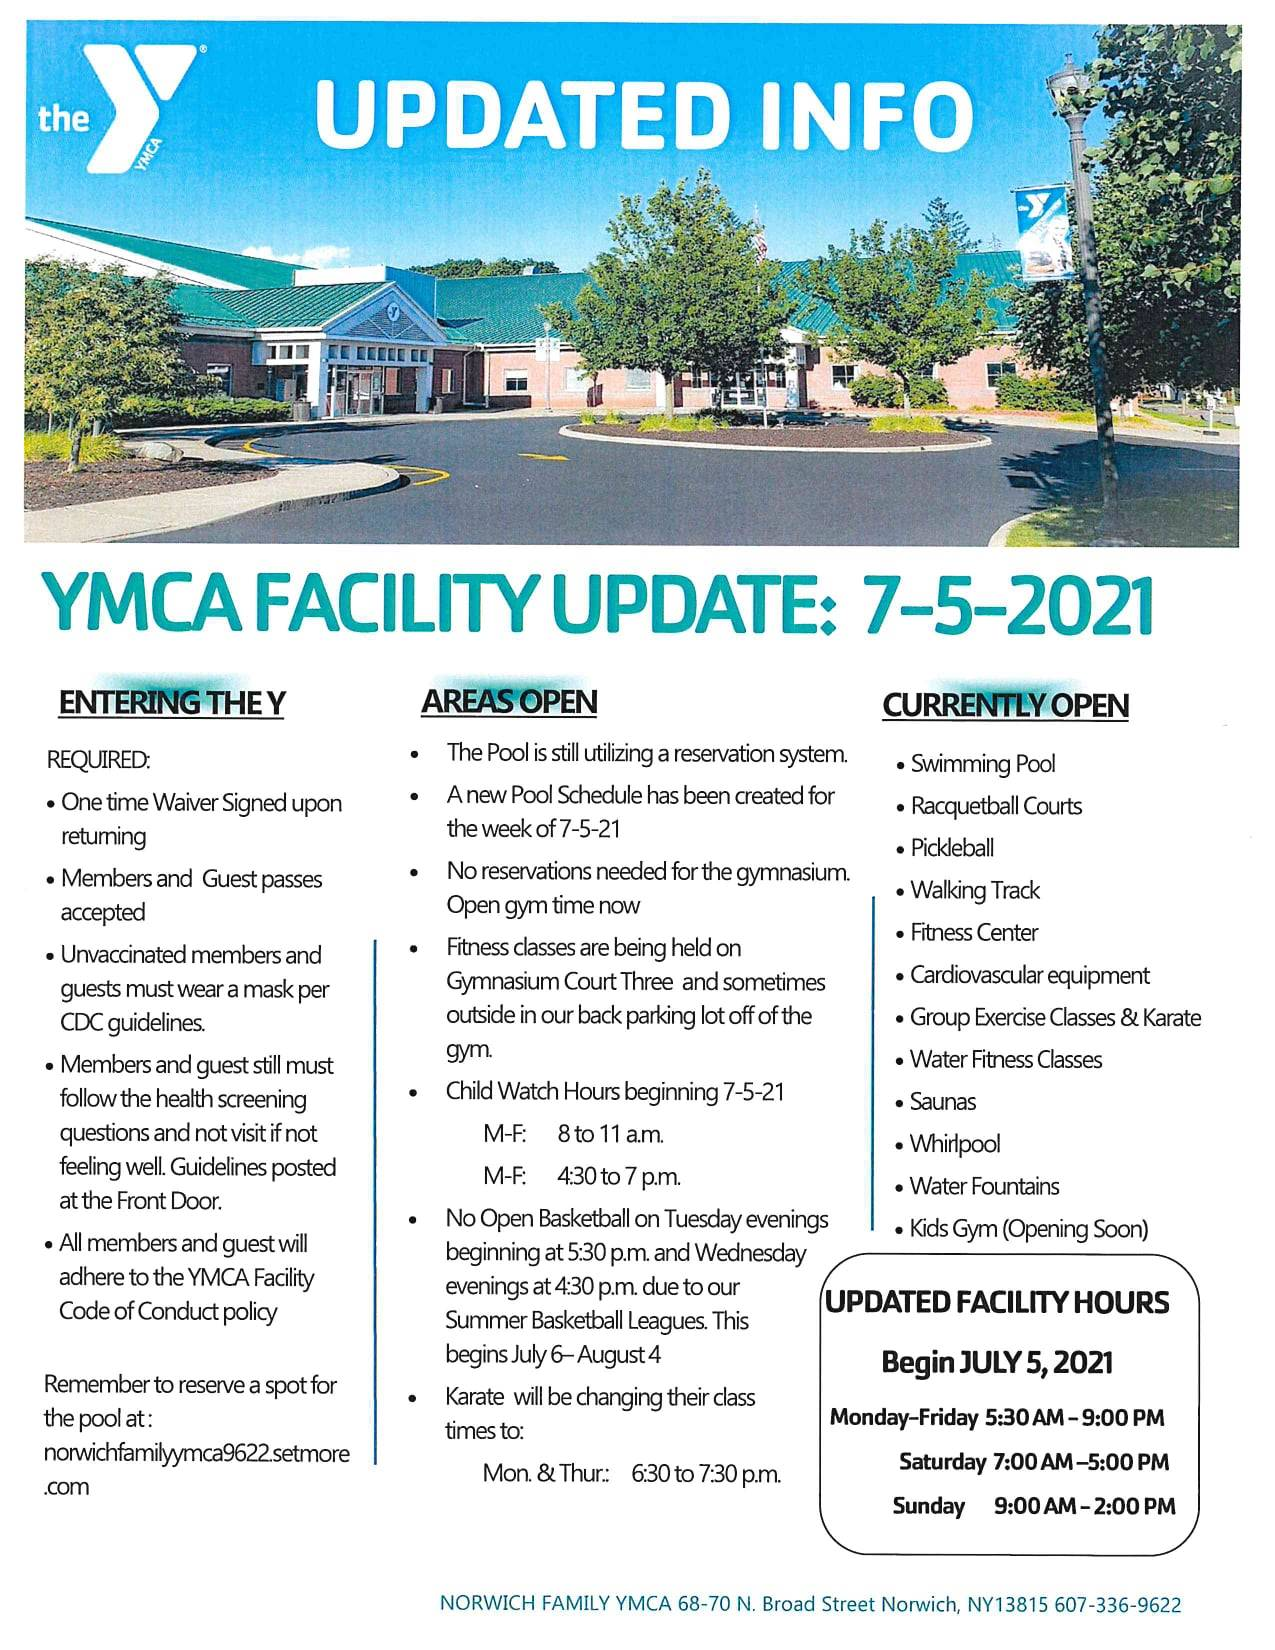 Facility Update: July 5, 2021